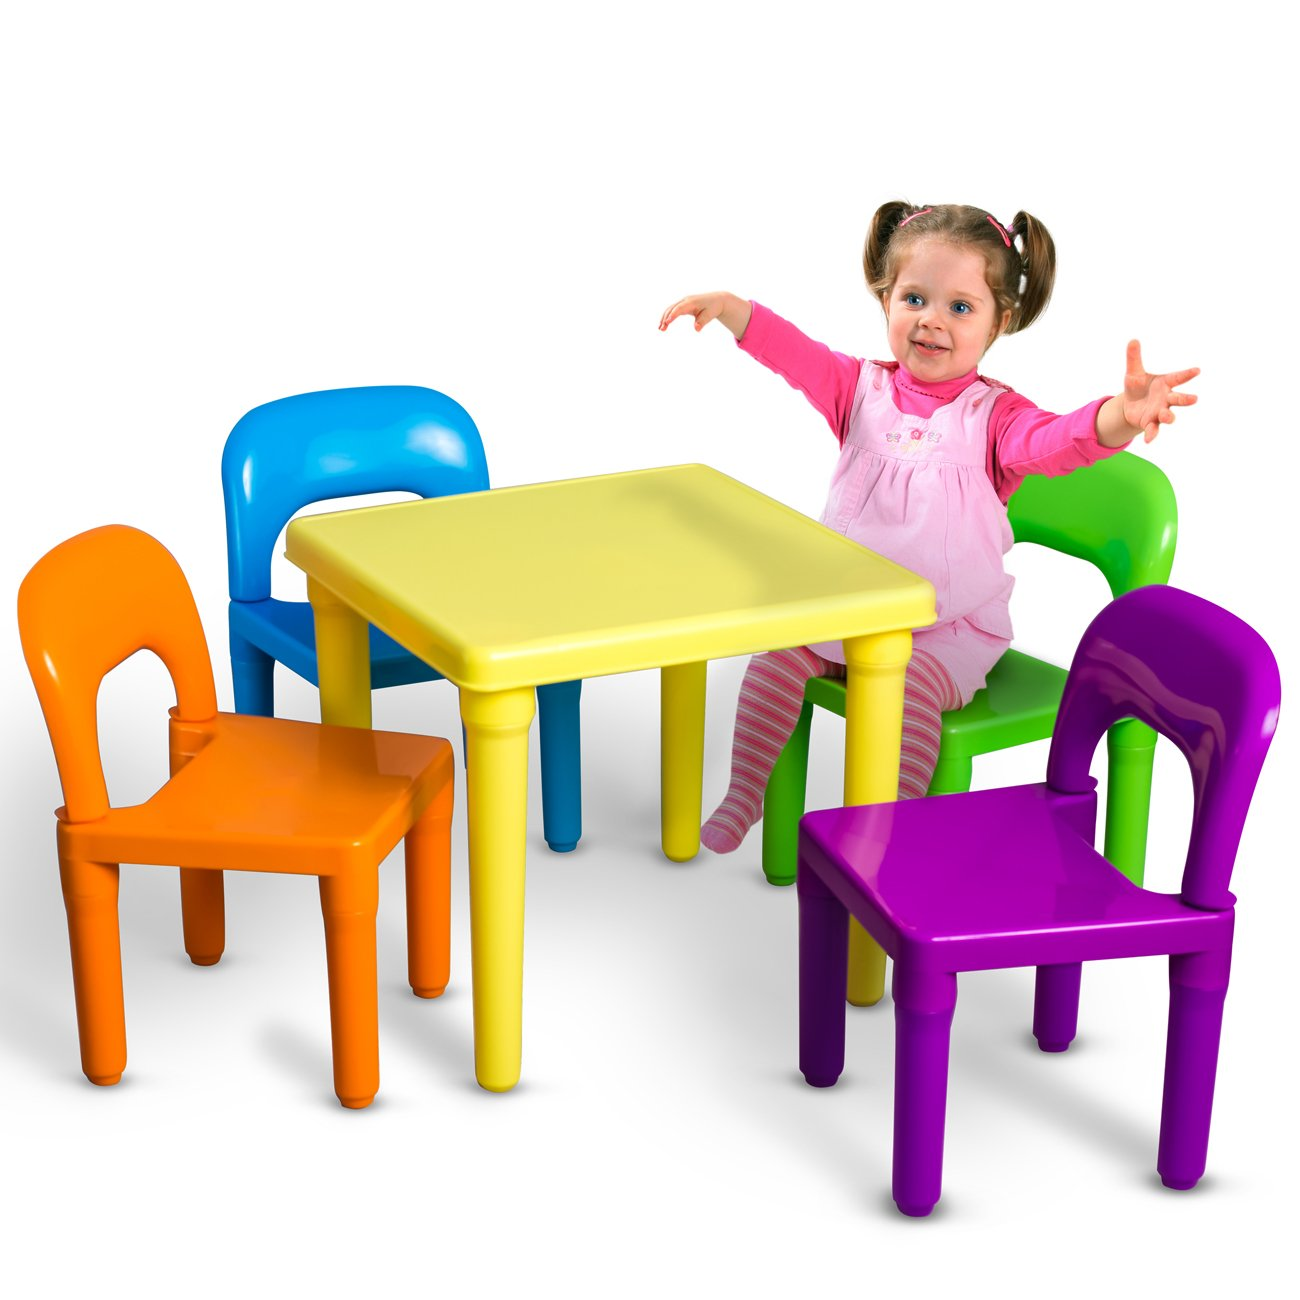 Amazoncom OxGord PLTC 01 Kids Plastic Table and